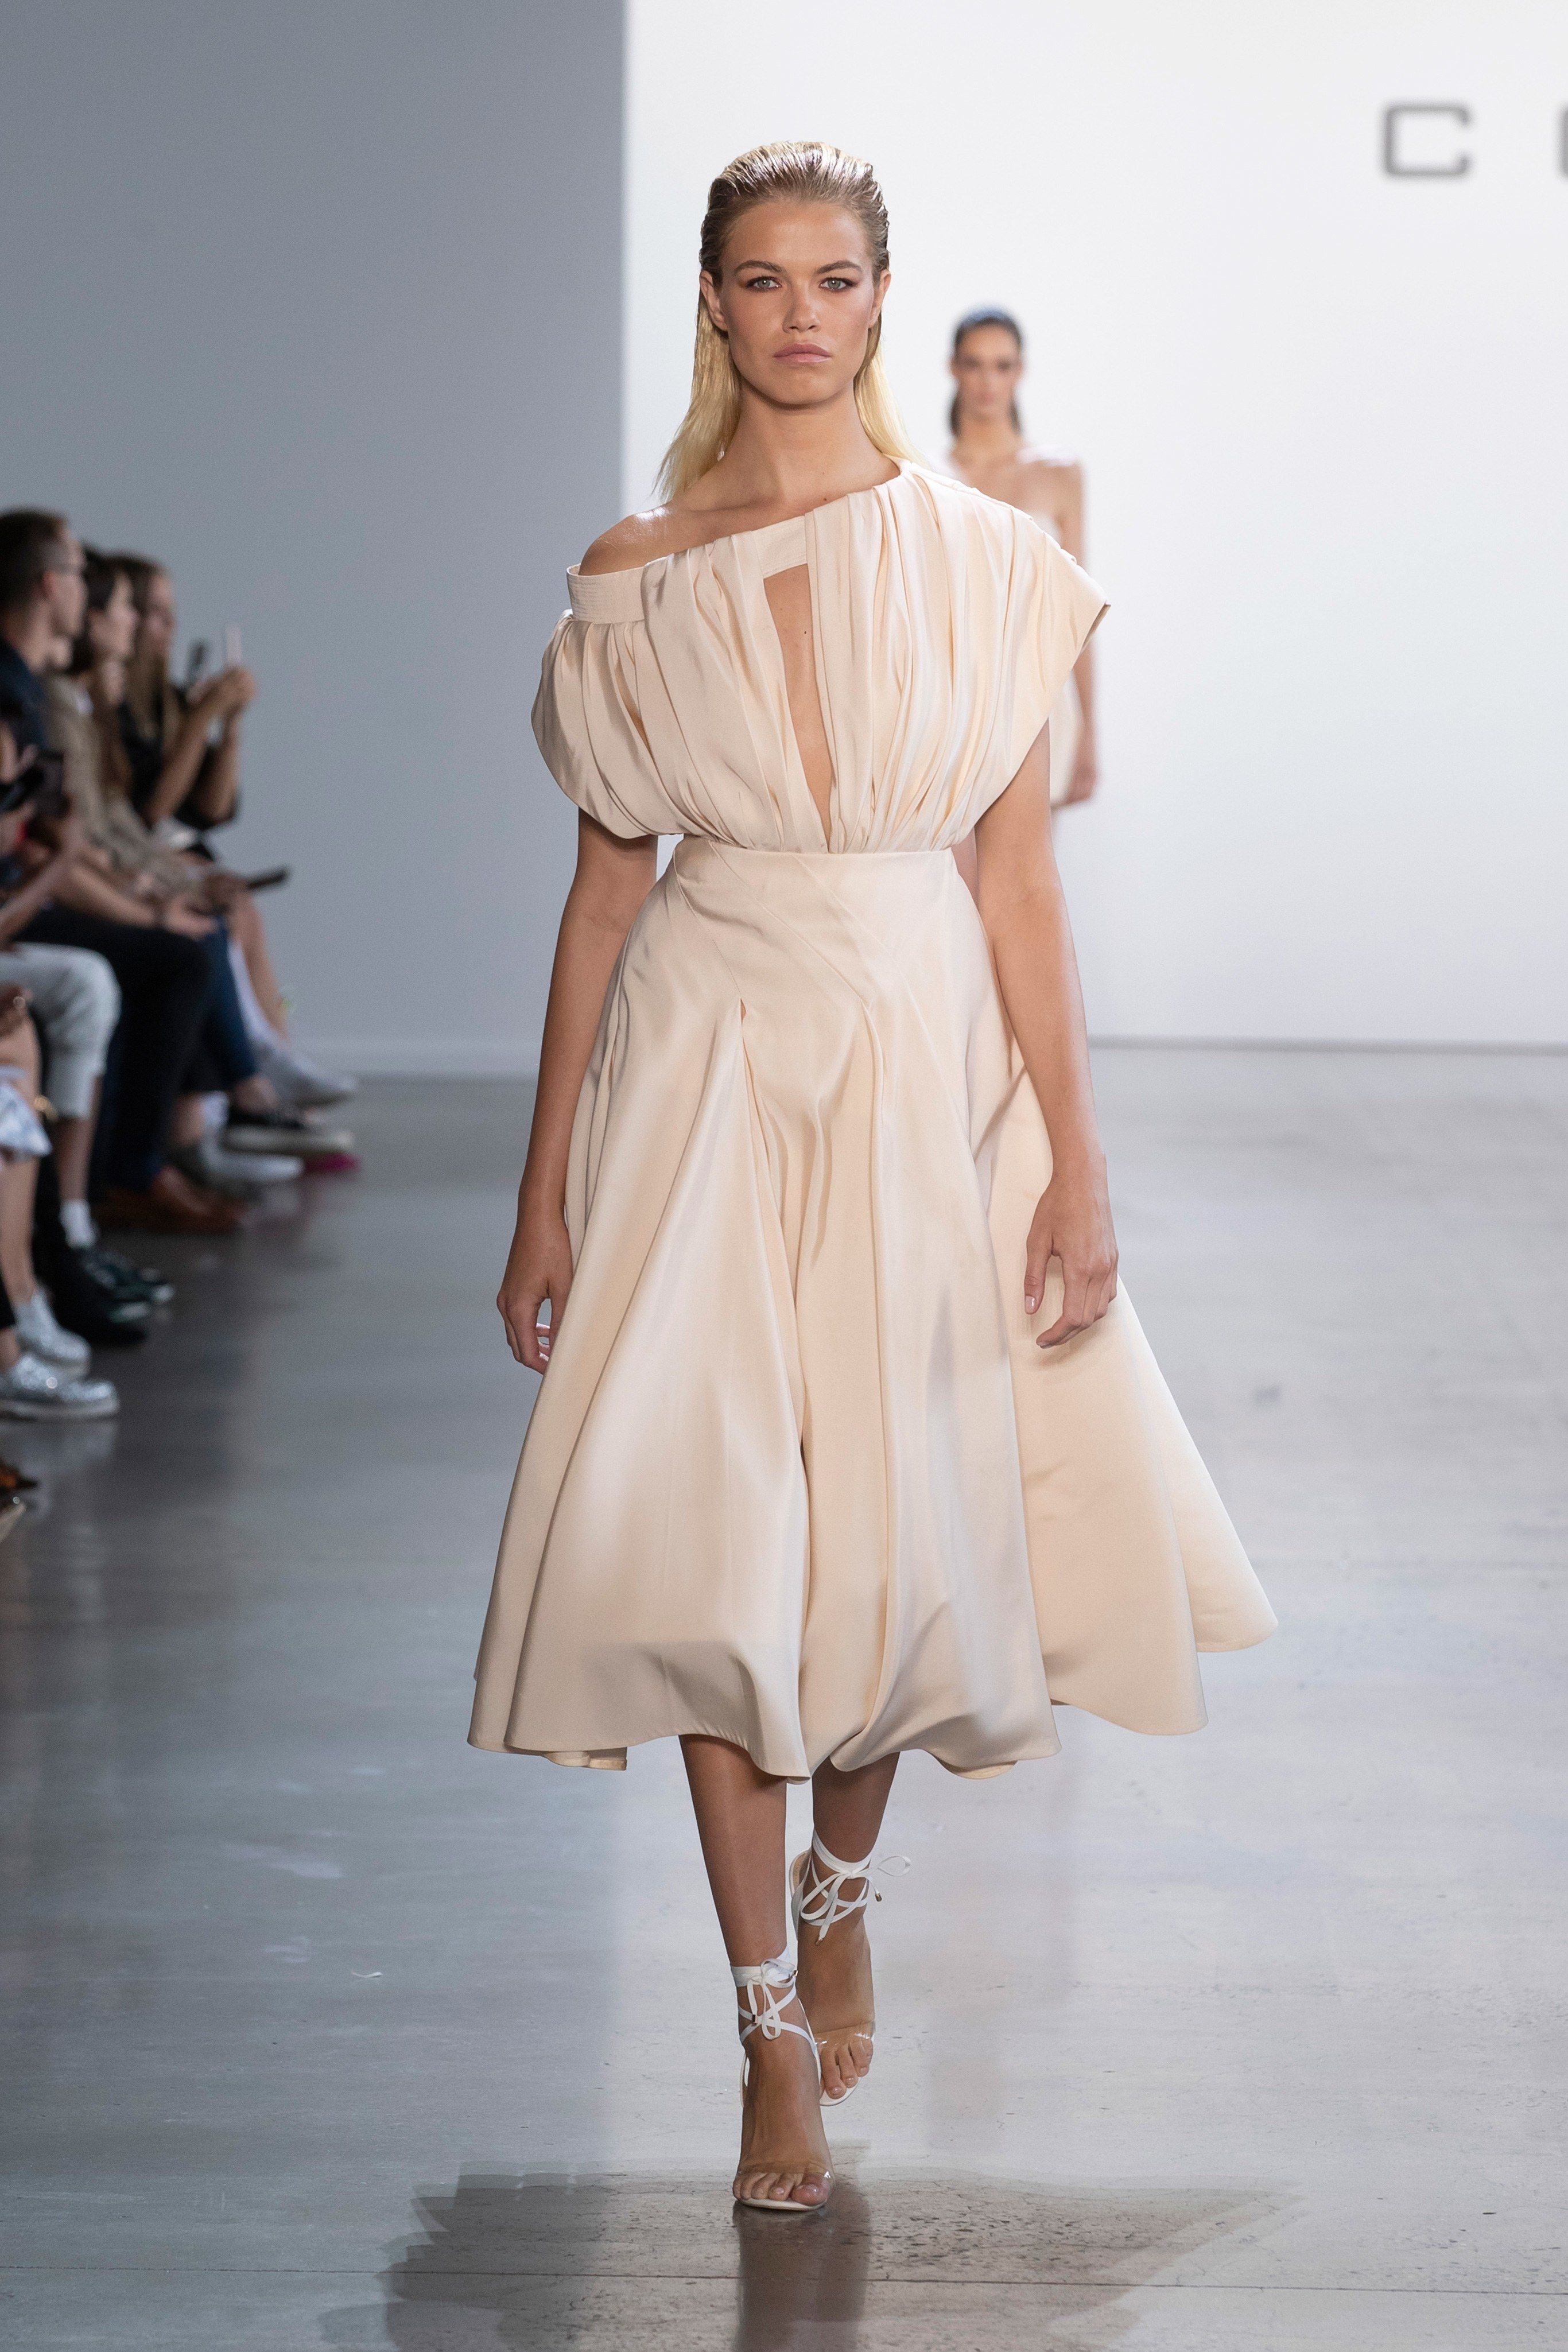 Cong Tri Spring 2020 Ready-to-Wear Fashion Show - Sponsored - Vogue